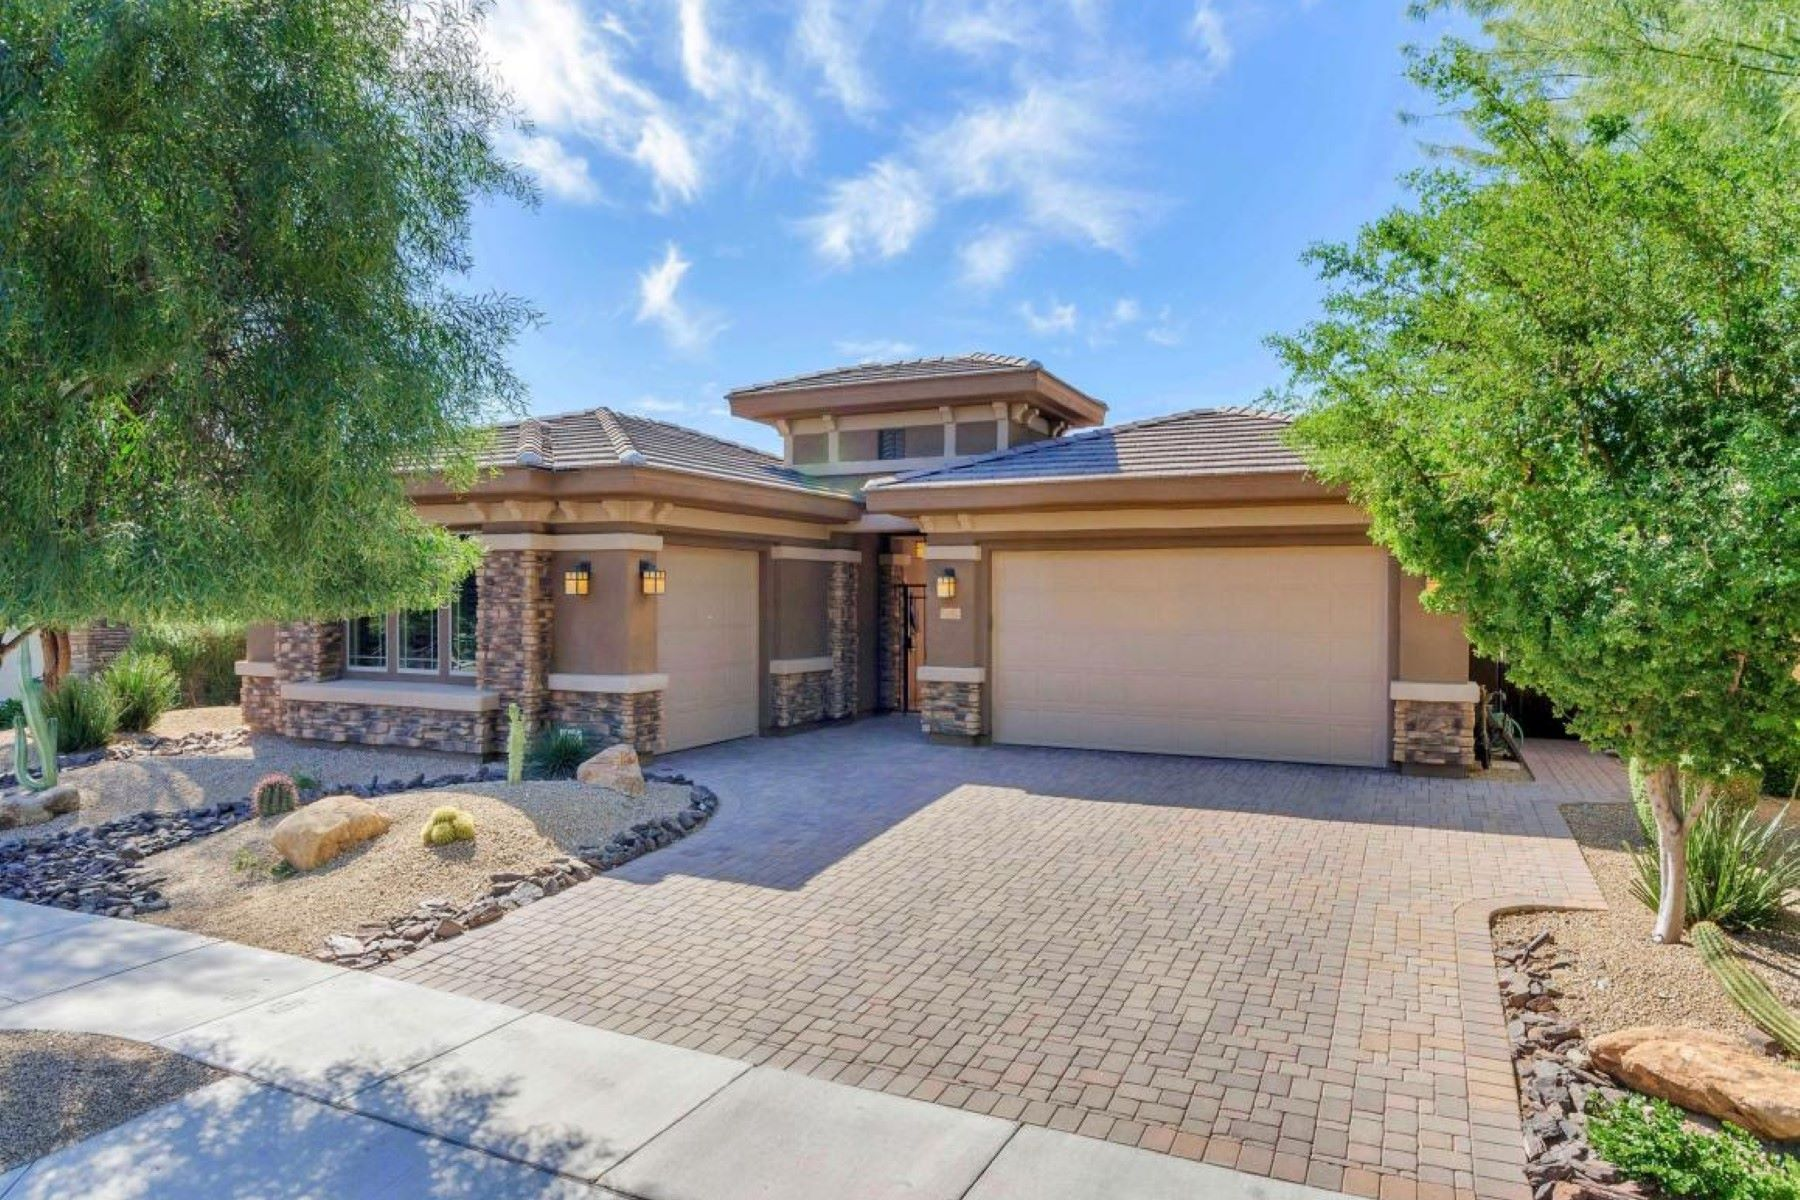 Villa per Vendita alle ore Stunningly beautiful home in Sonoran Foothills 1725 W Burnside Trl Phoenix, Arizona, 85085 Stati Uniti